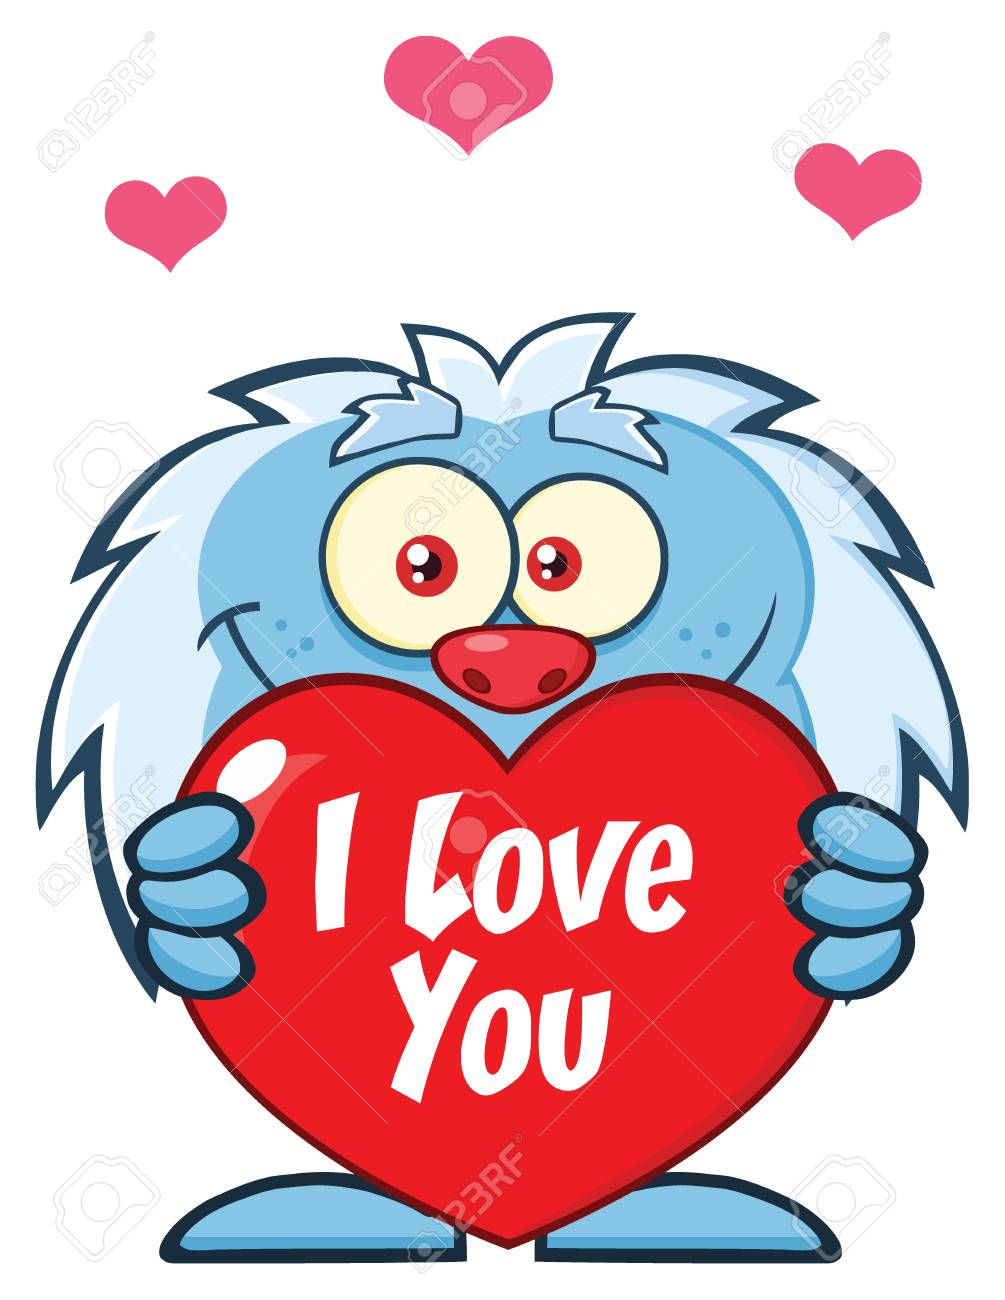 Cute Little Yeti Cartoon Mascot Character Holding A Valentine Love Heart.  Illustration Isolated On White